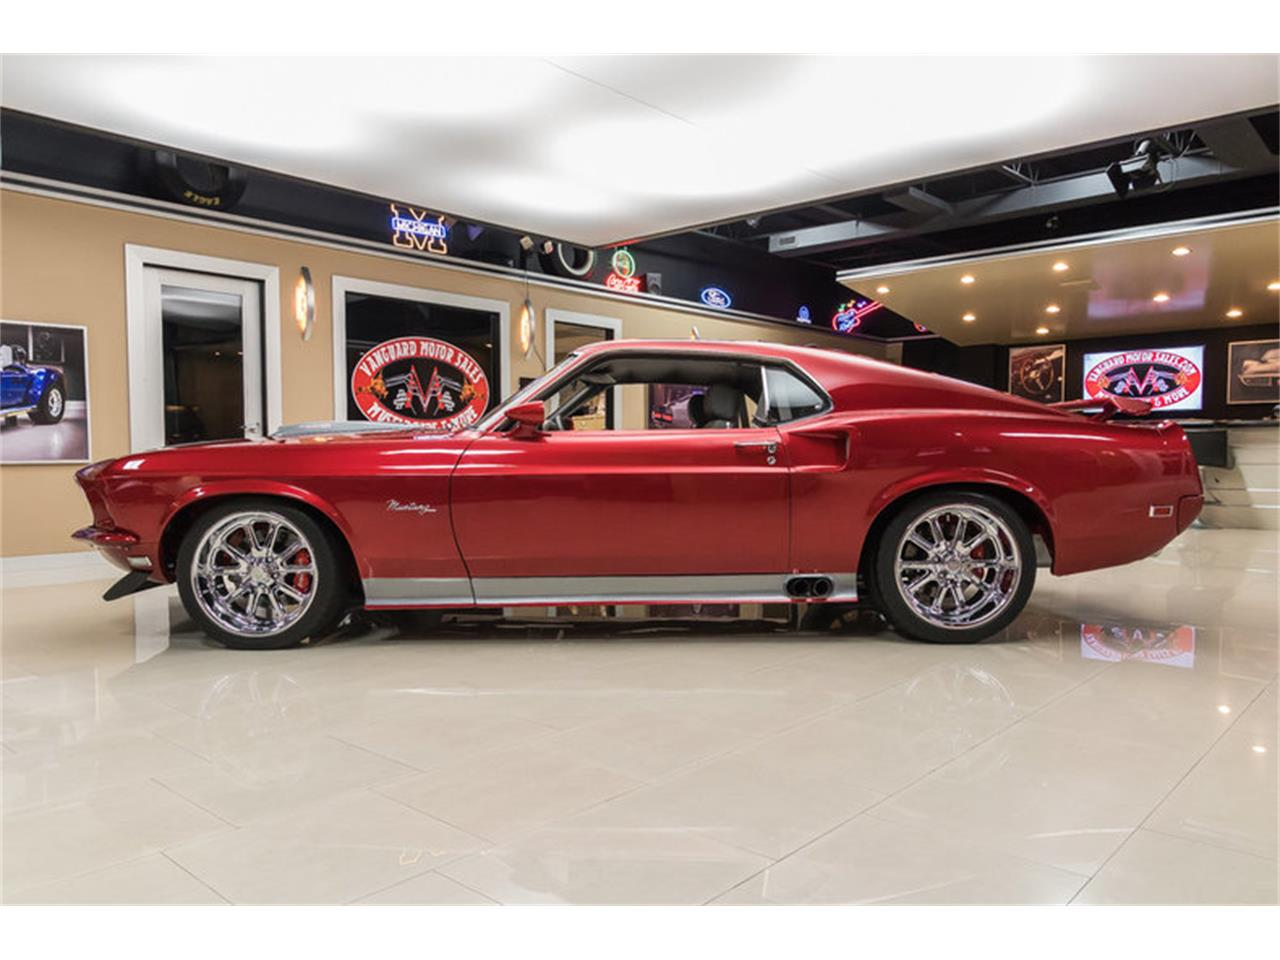 Large Picture of '69 Ford Mustang Fastback Restomod - $194,900.00 - L6C8